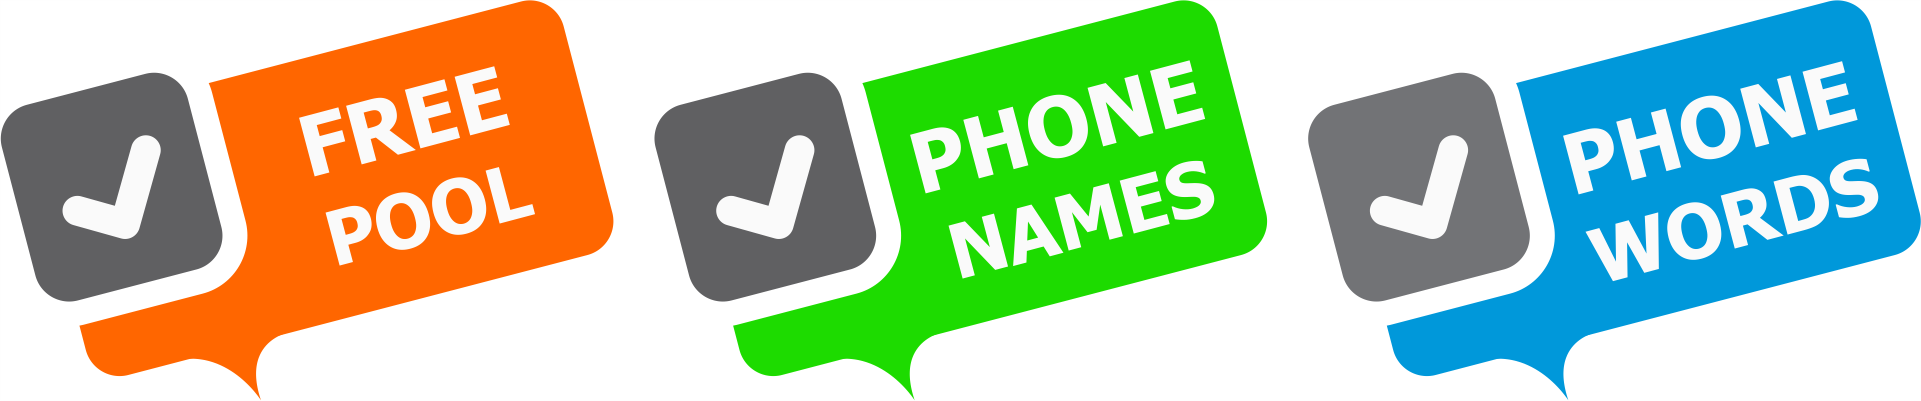 available-13-1300-1800-numbers-free-search-advice-banner-220917.png